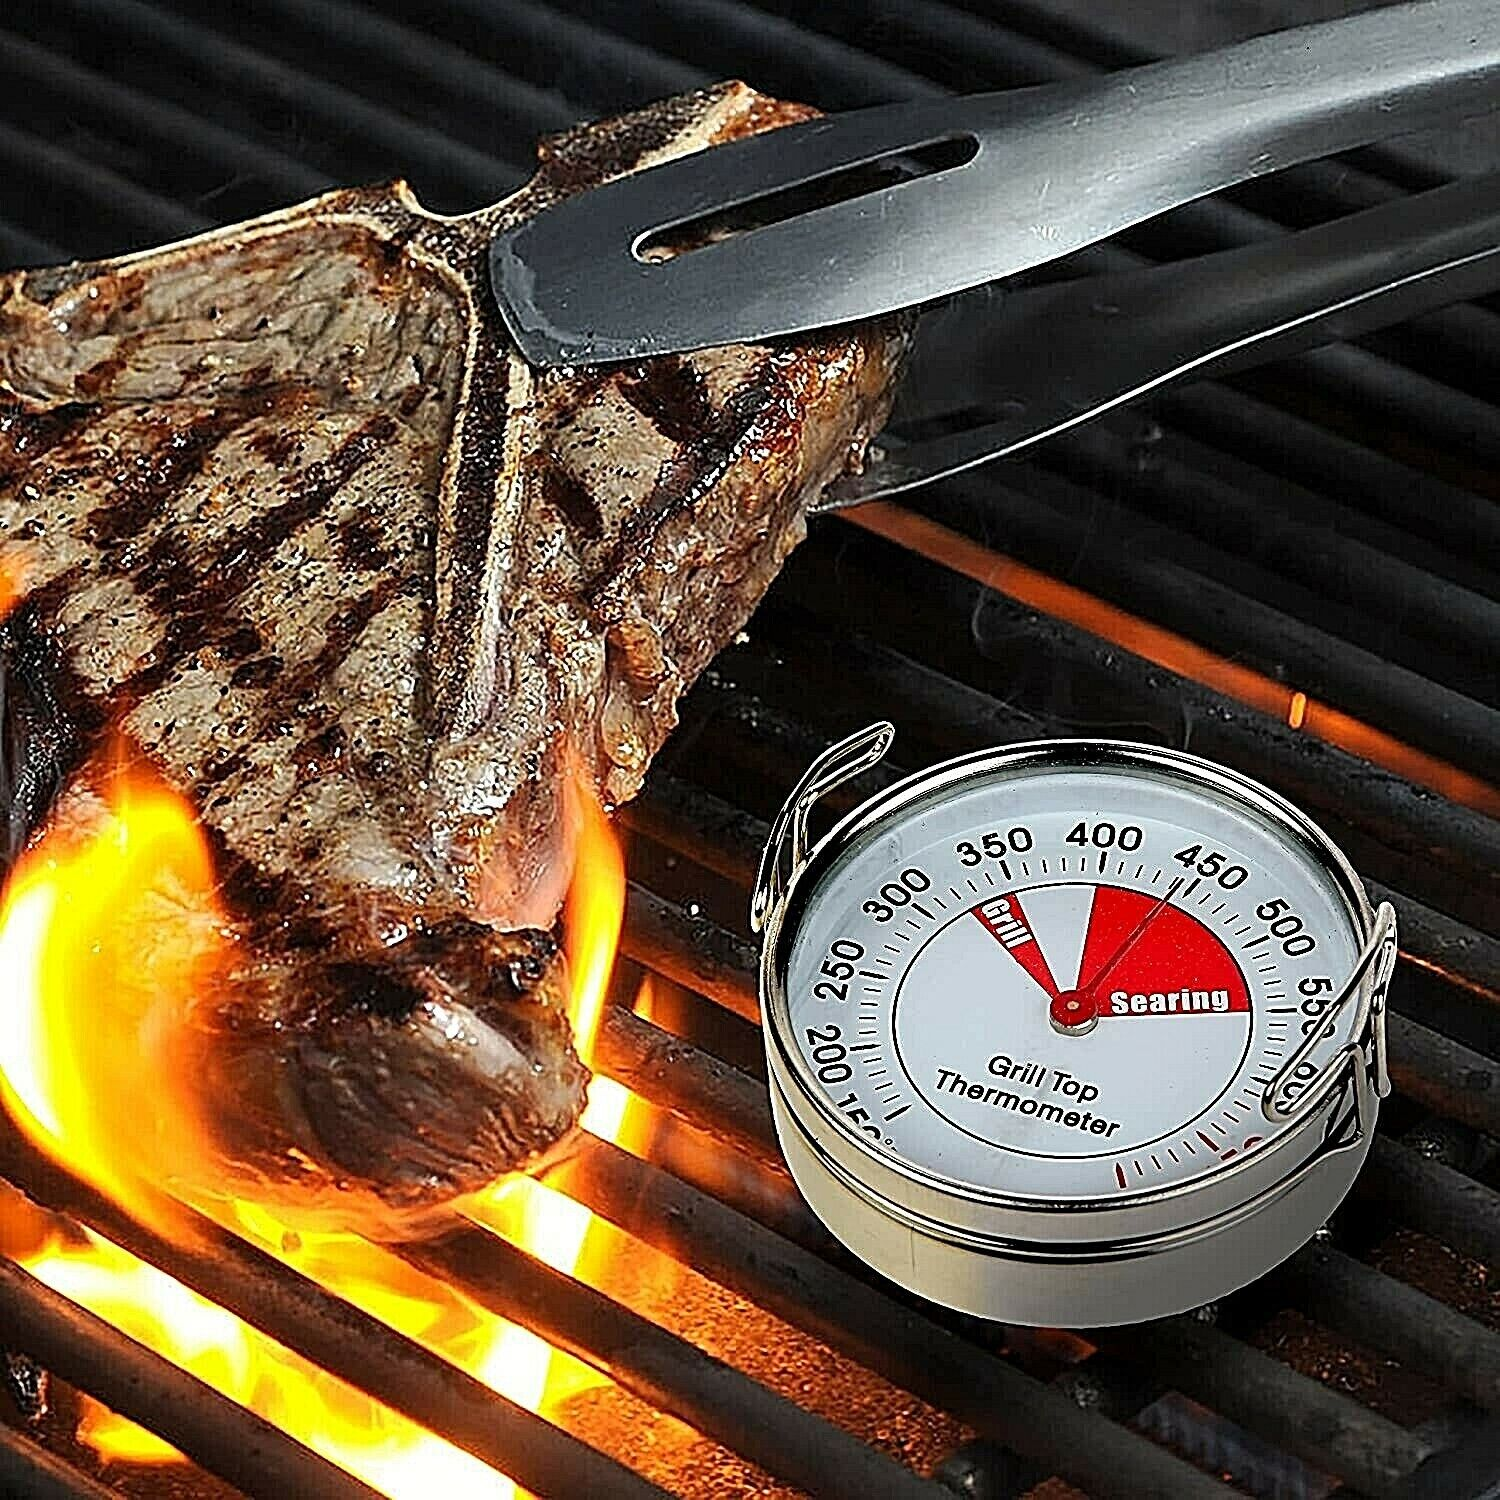 Grill Top Thermometer, 150 to 700 Wireless Grate Top Grill Surface Clip On NIB Cooking Thermometers